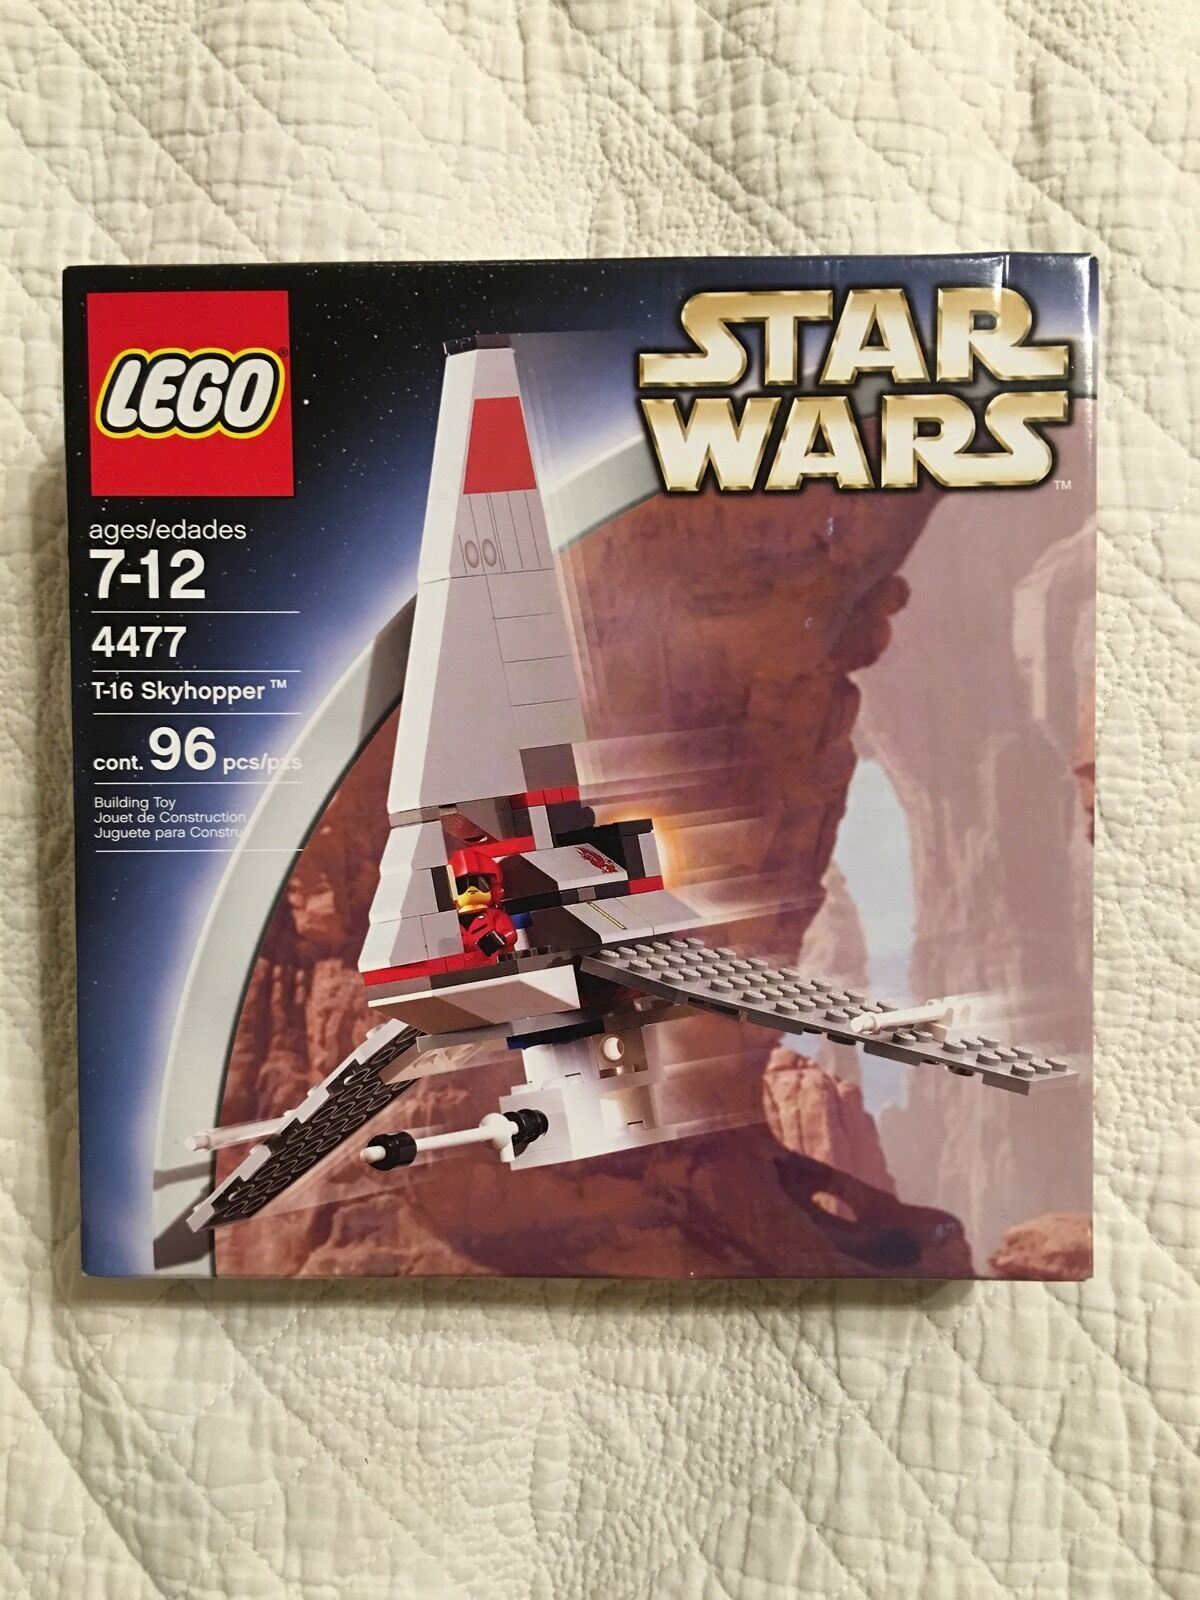 LEGO T-16 Skyhopper 4477 Star Wars Factory Sealed New 96pcs